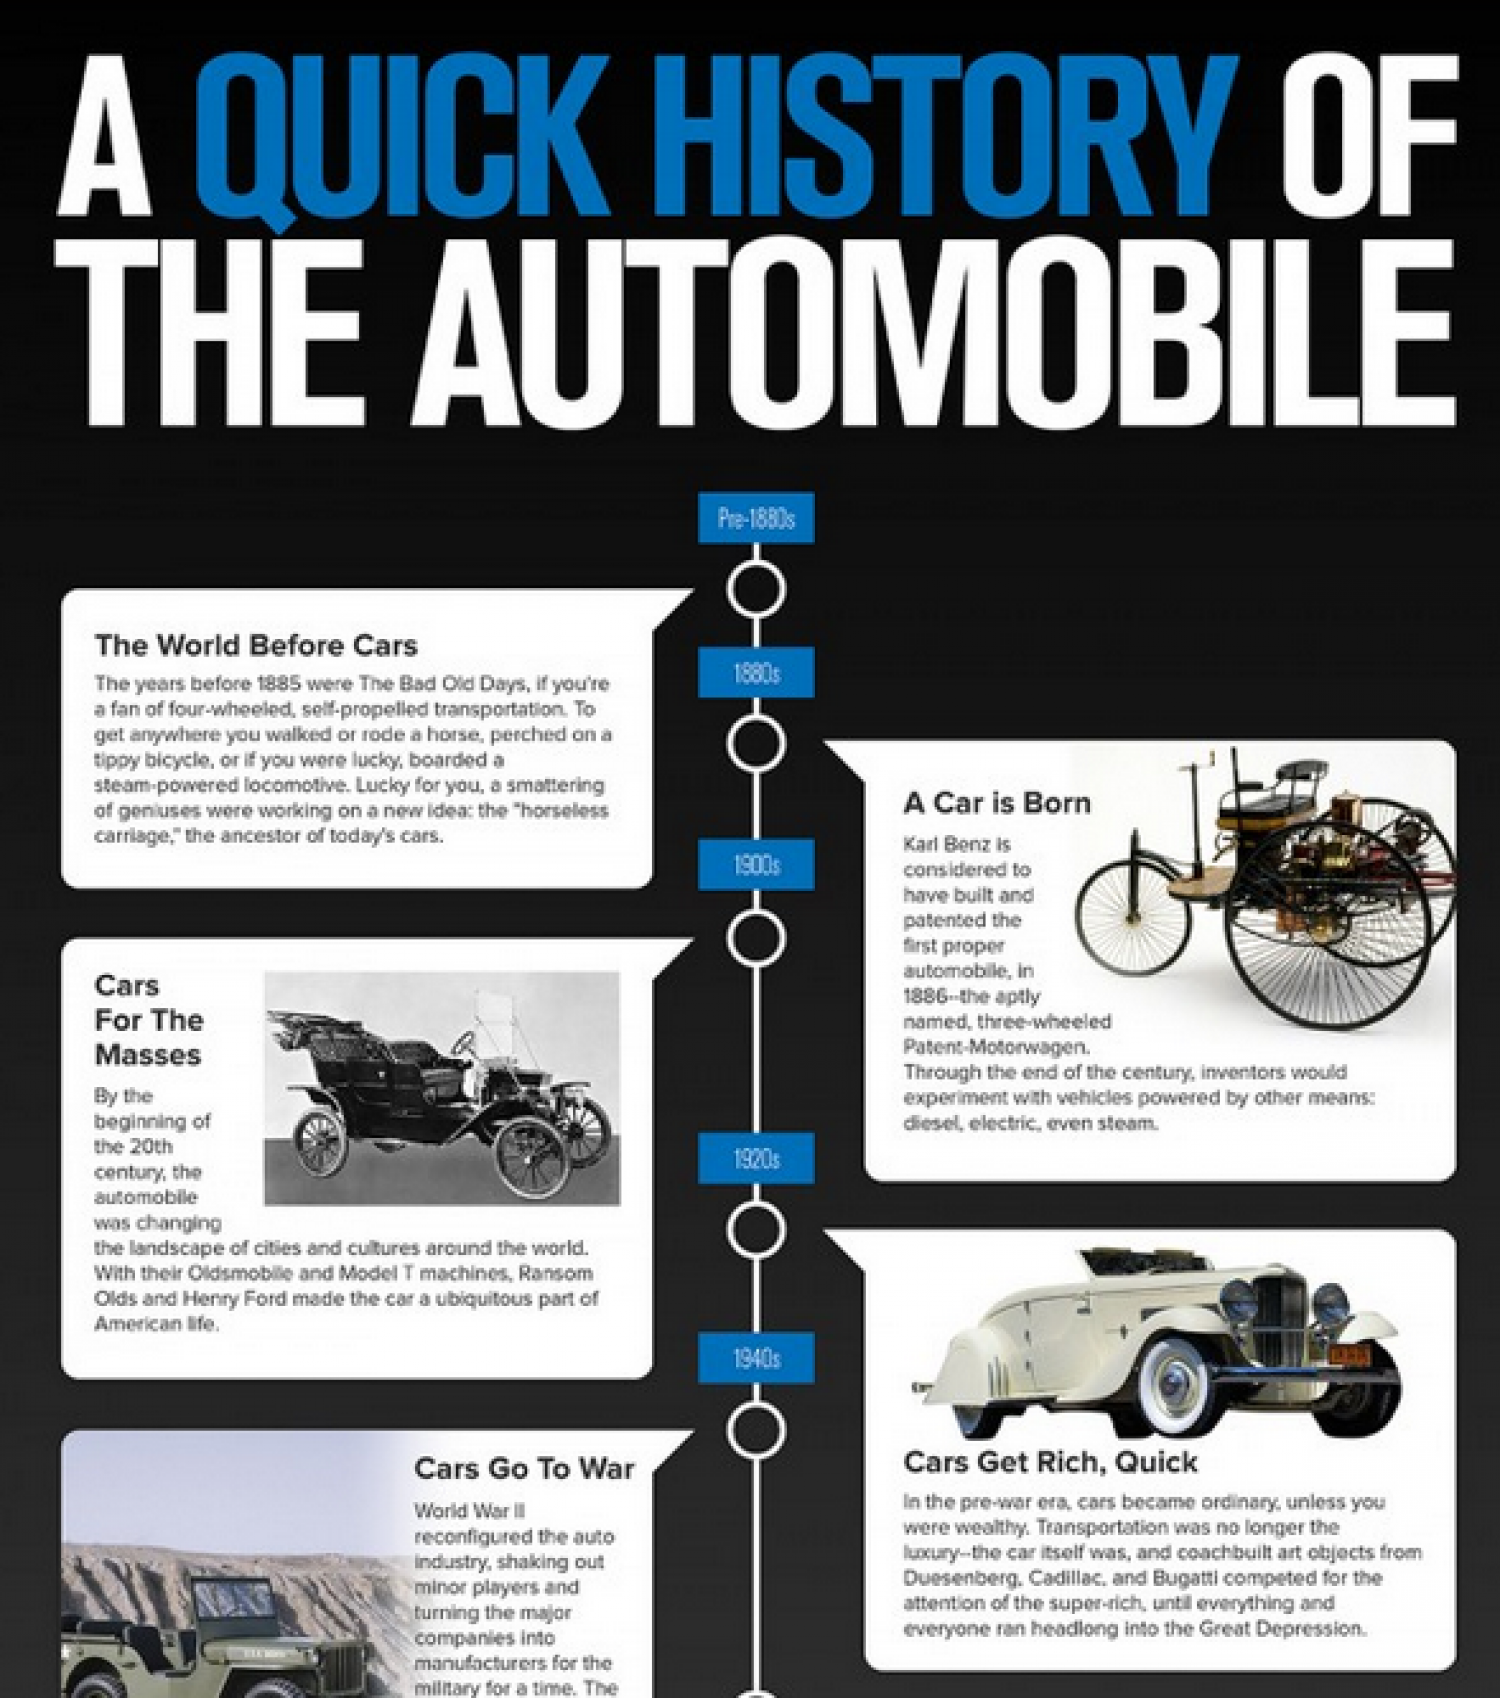 A Quick History Of The Automobile | Visual.ly